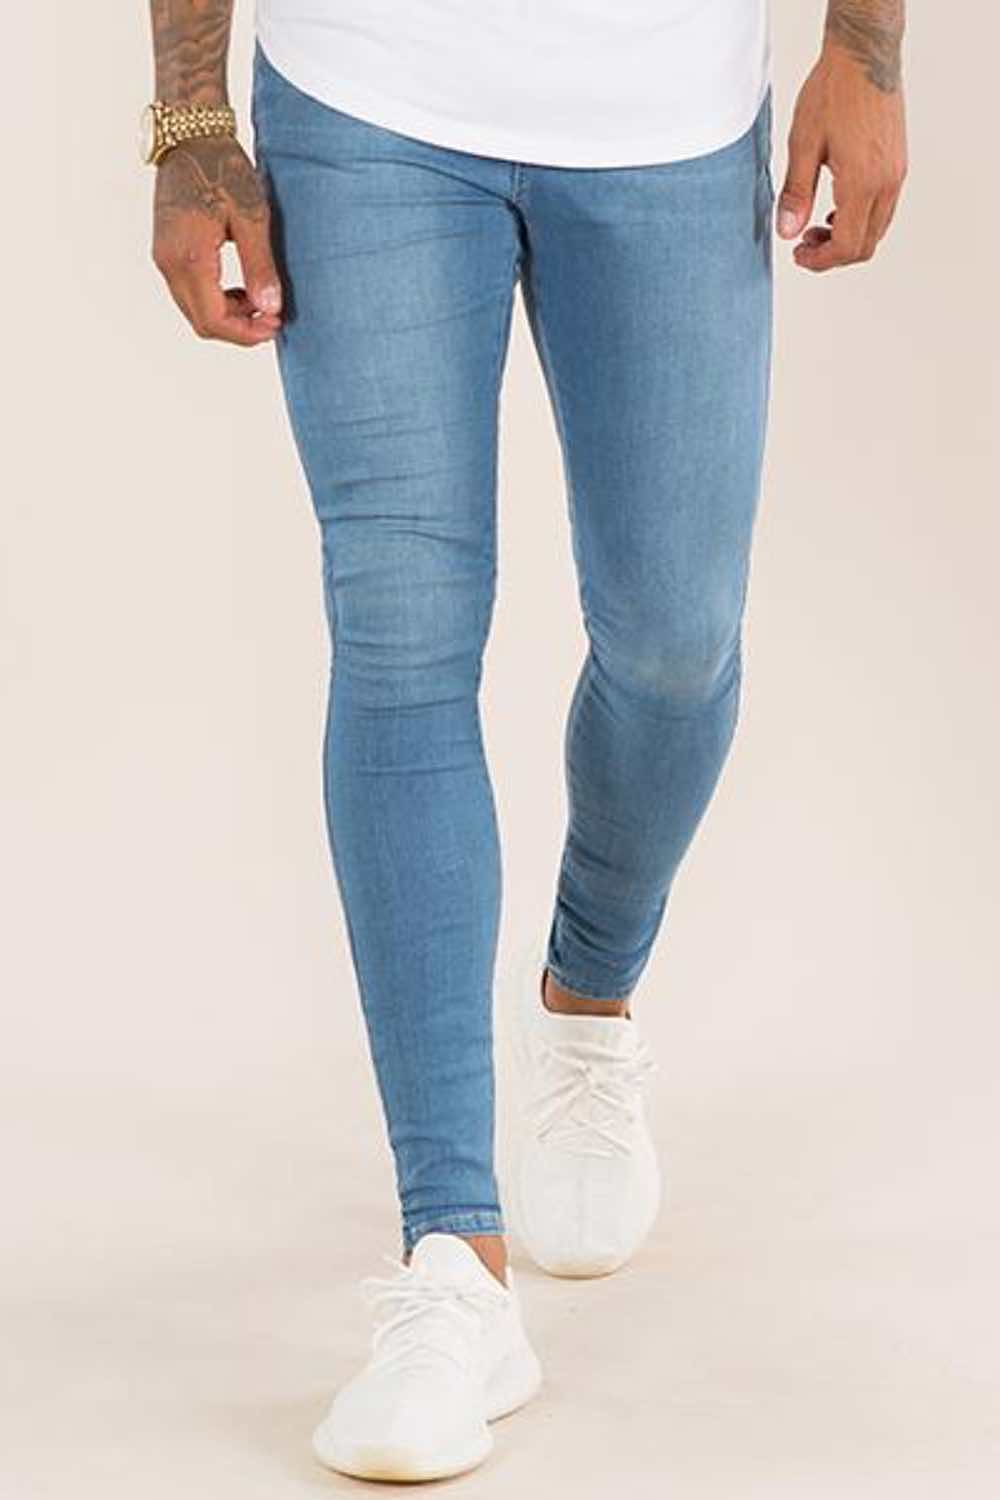 Emulate Super Spray On Skinny Jeans - Light Wash - 1